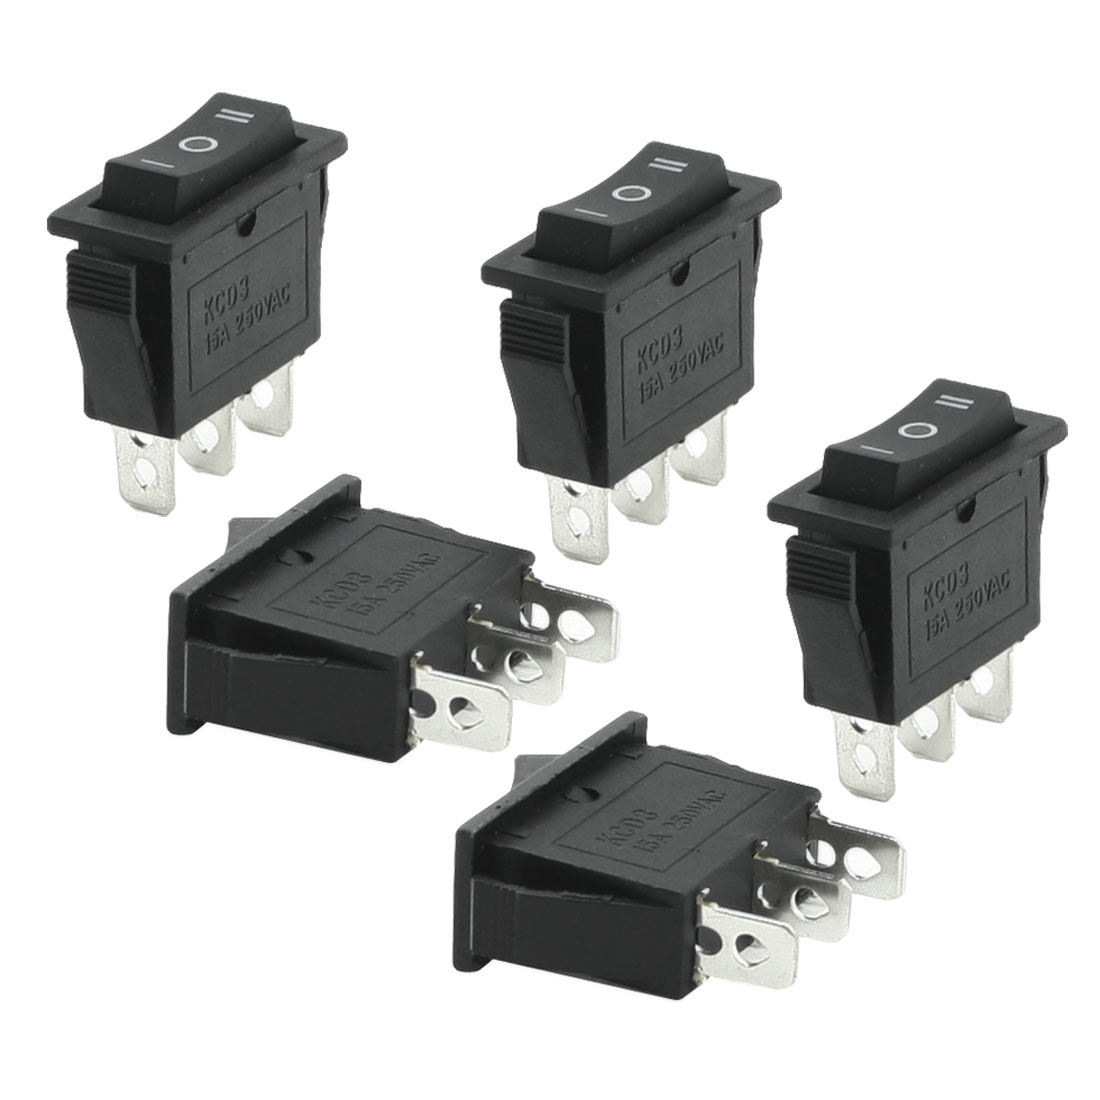 Unique Bargains 5 Pcs 3 Pins SPDT Black On/Off/On Rocker Switch AC 250V 15A